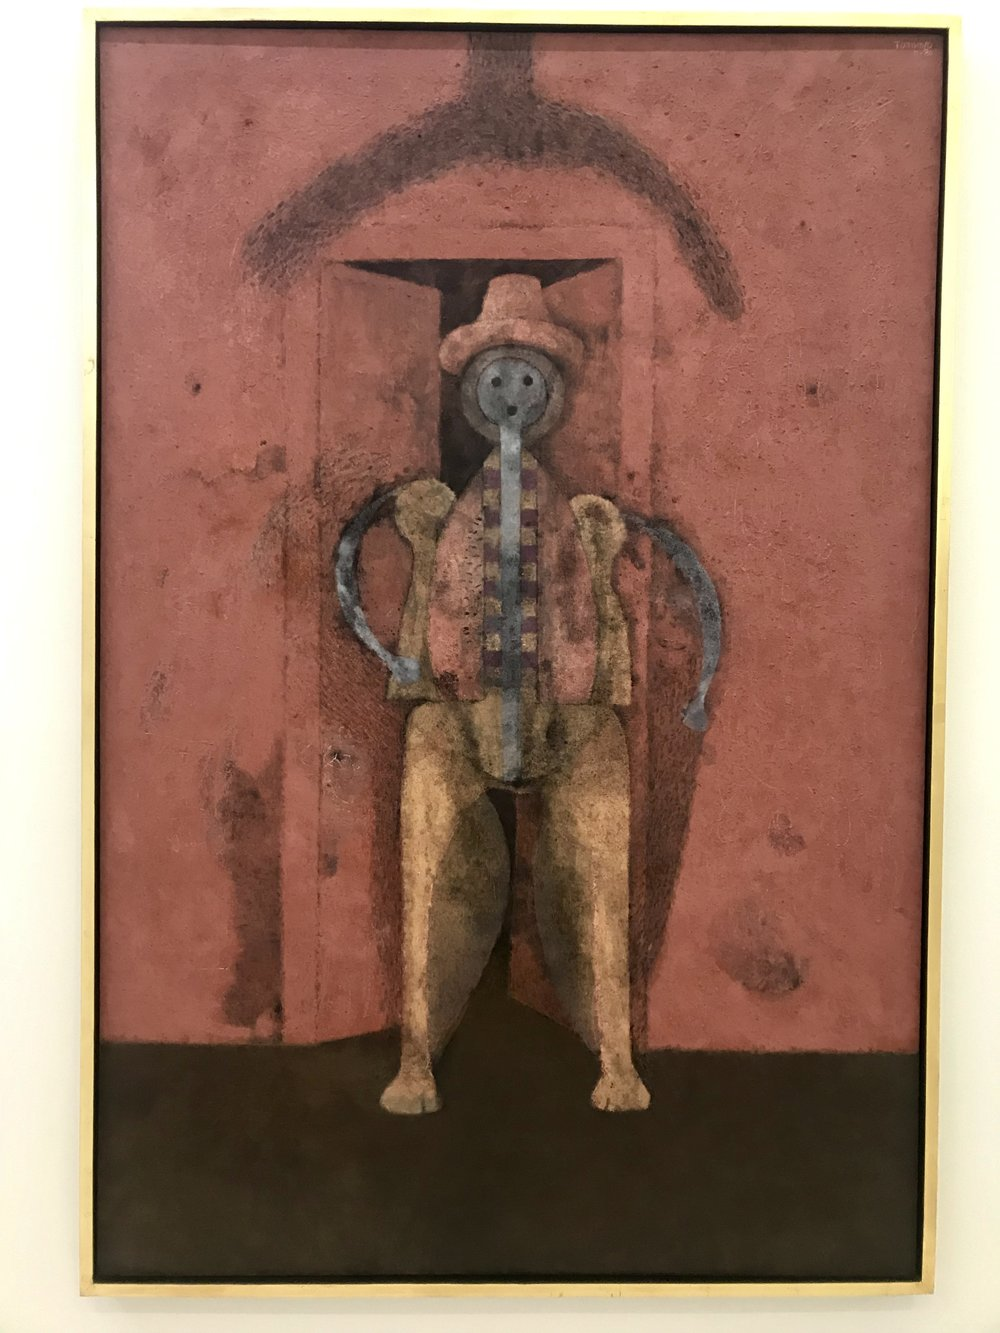 One of my favorite paintings by Oaxaco-born artist Rufino Tamayo. Seen in Museo Jumex.